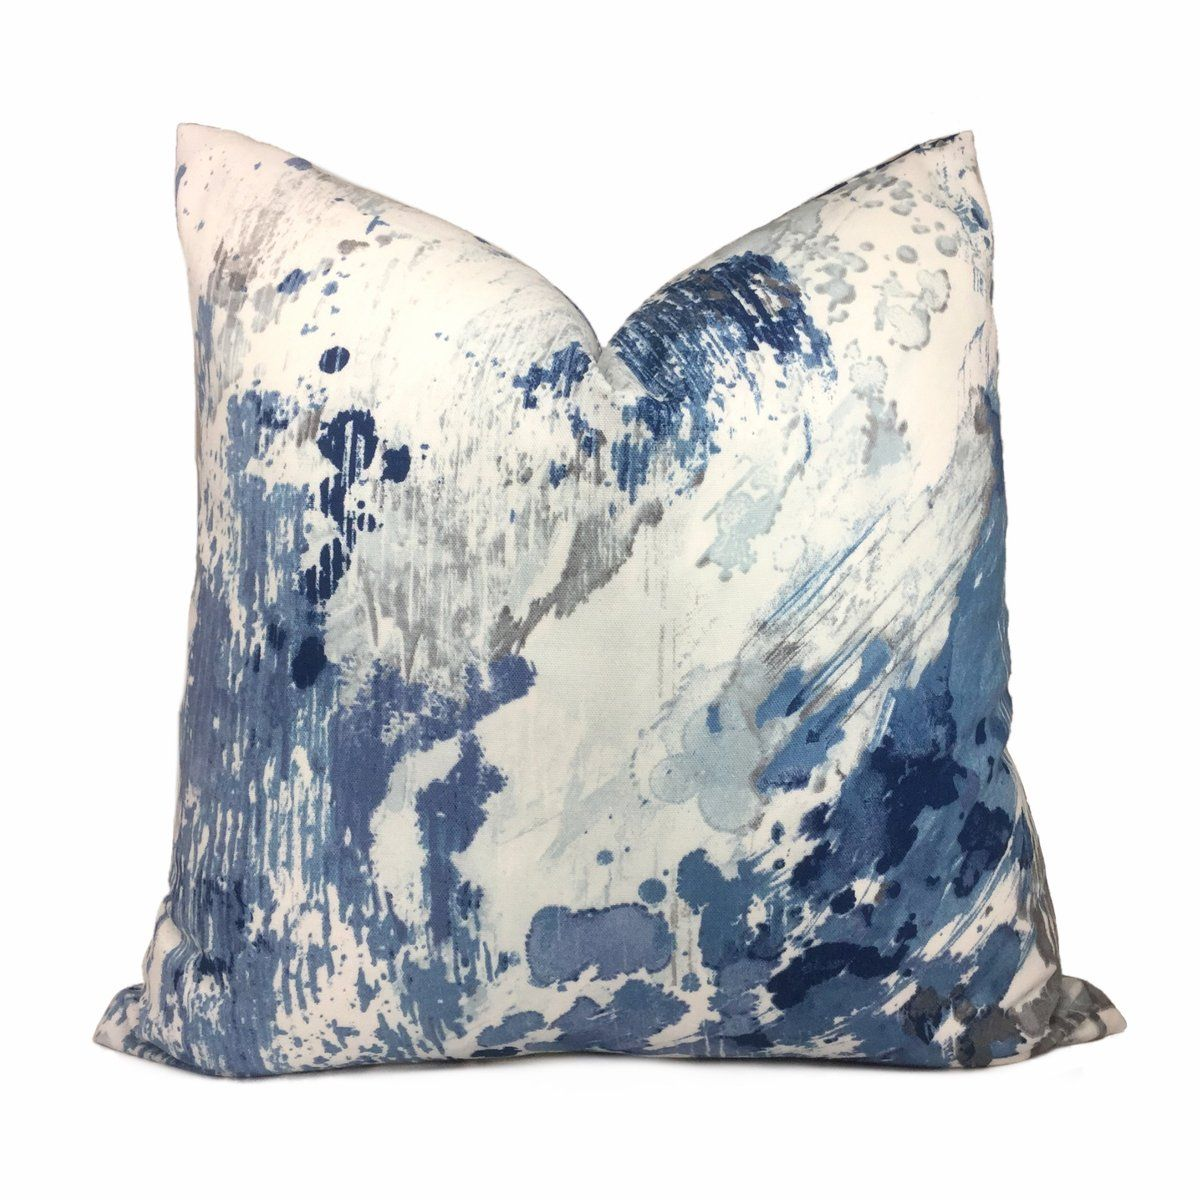 Orinoco Blue Gray White Modern Art Cotton Print Pillow Cover Animal Print Pillows Printed Pillow Blue Pillow Covers